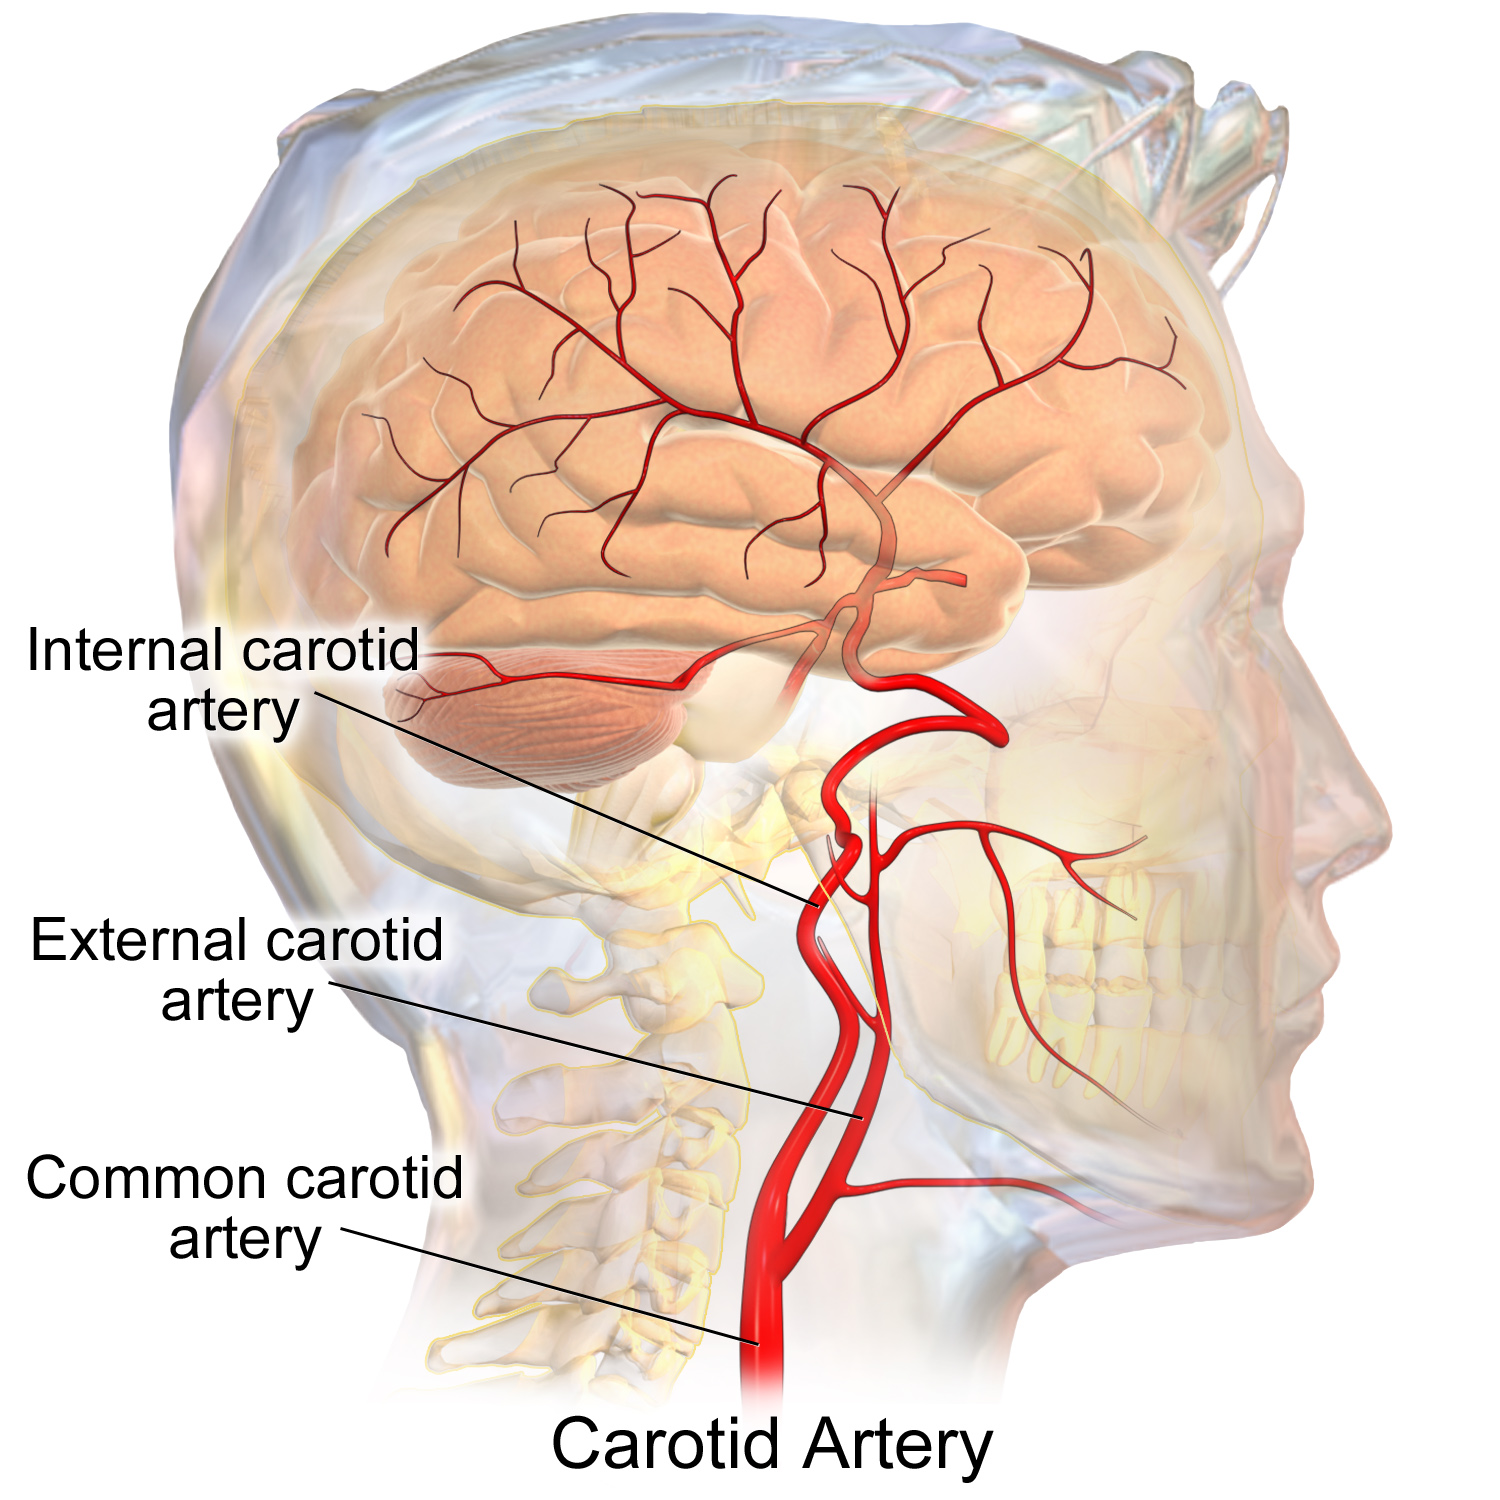 Common Carotid Artery Occlusion The Common Carotid Artery And